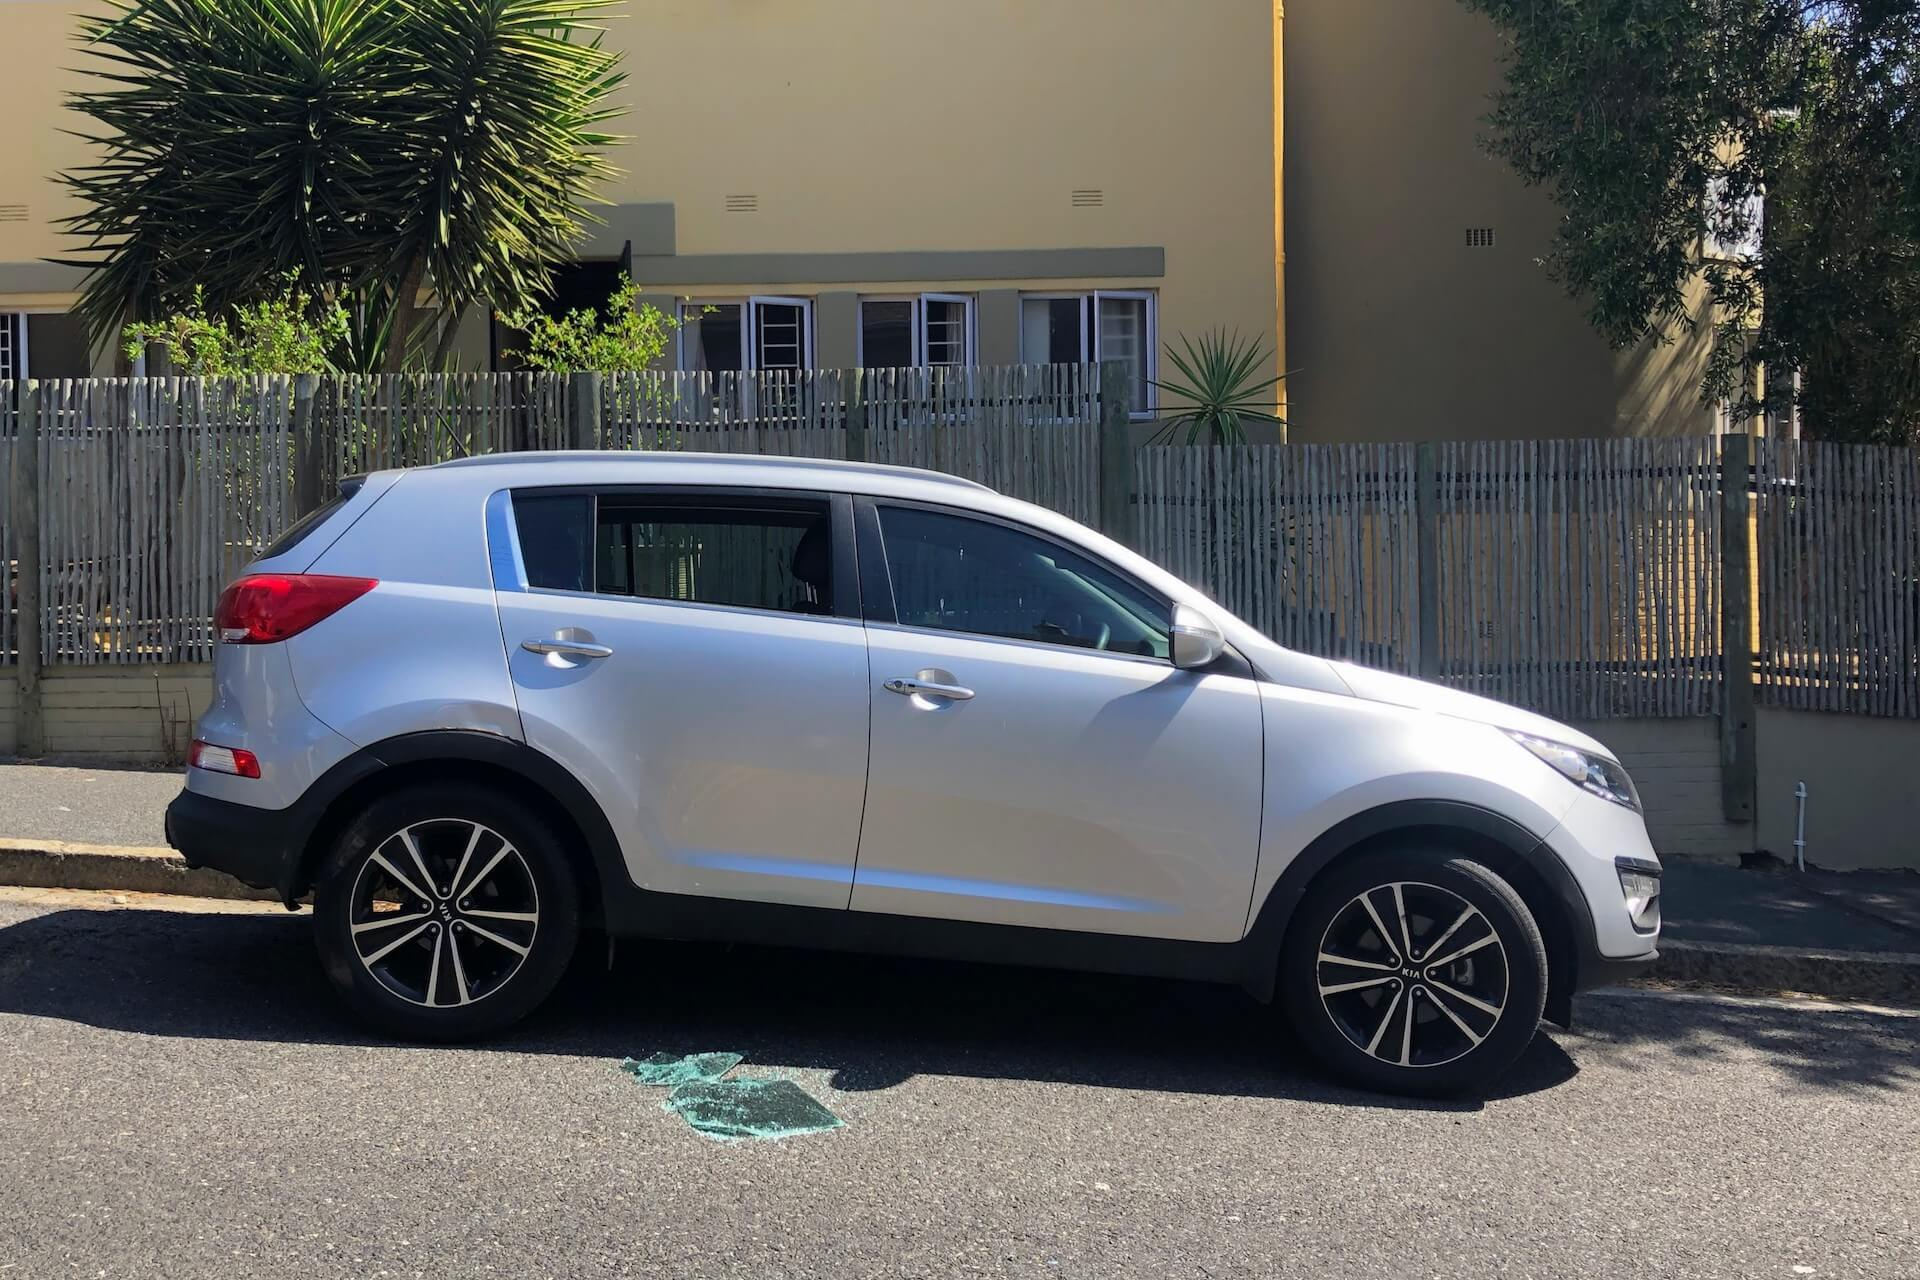 Where to stay in Cape Town - renting a car isn't always the best choice